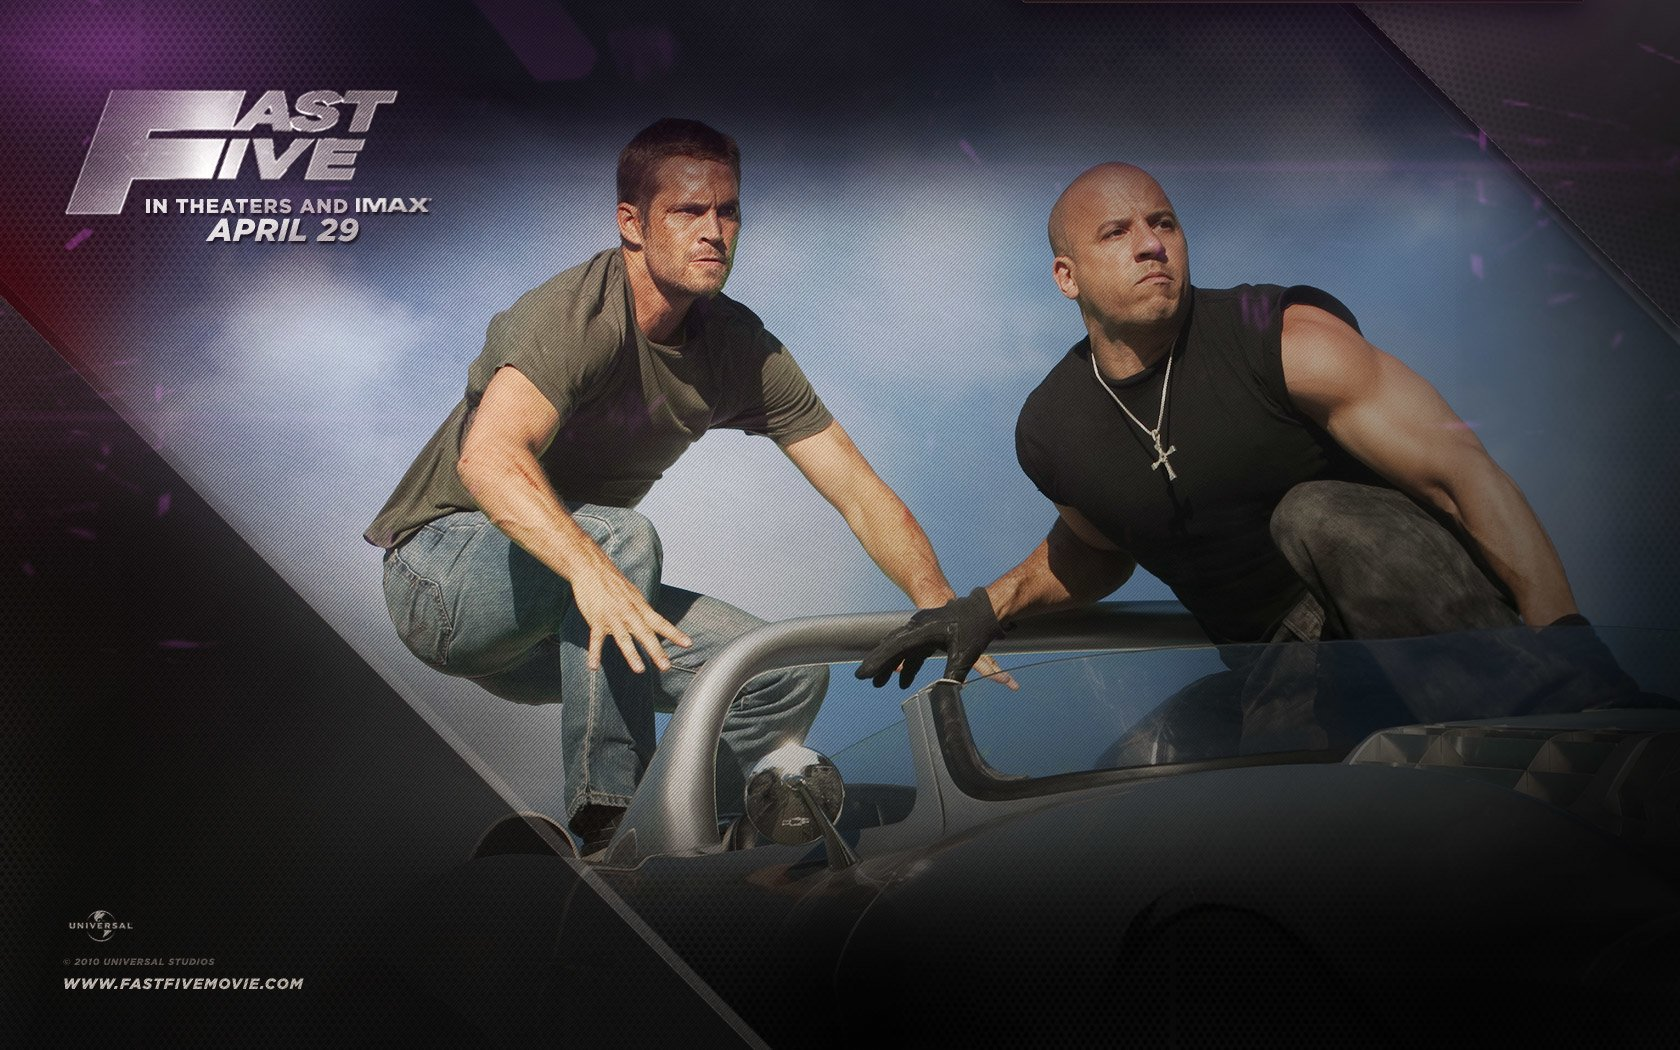 Movie - Fast Five  Dominic Toretto Brian O'Conner Vin Diesel Paul Walker Wallpaper